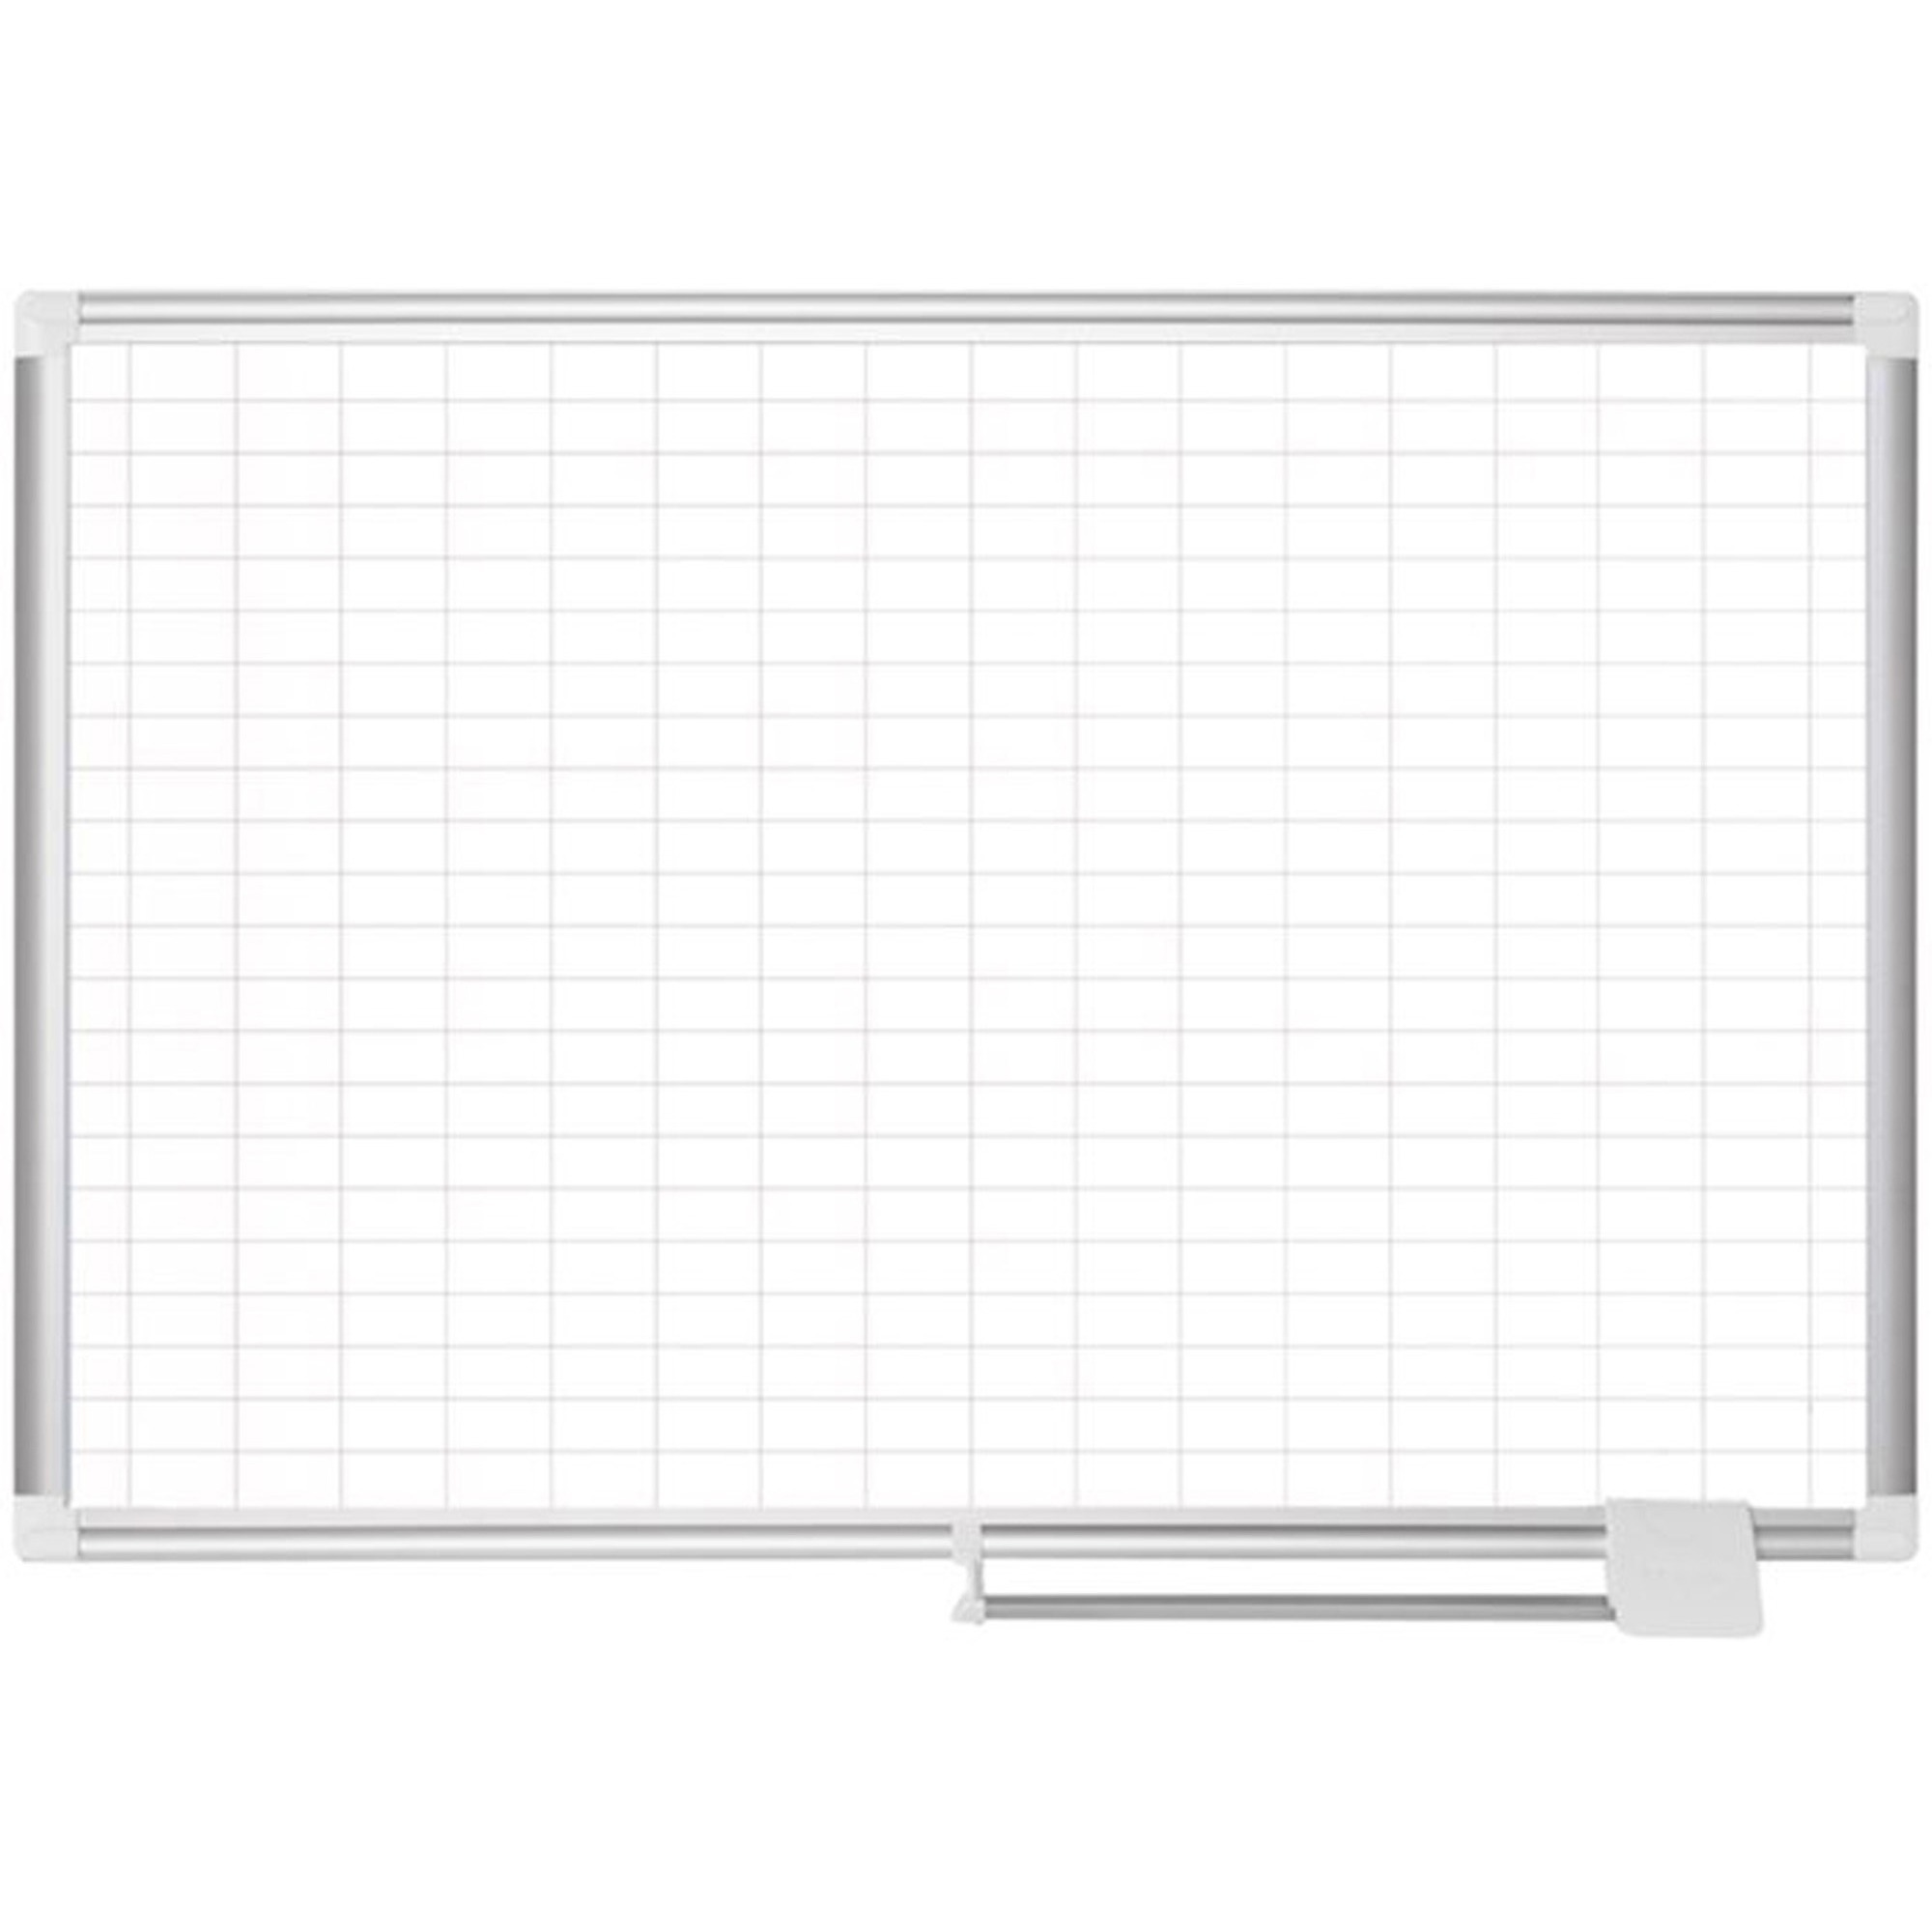 Bi-silque S.a Mastervision 2 Grid Magnetic Gold Ultra Board Kit - White, Gold - Aluminum, Steel - Magnetic, Dry Erase Surface, Marker Tray